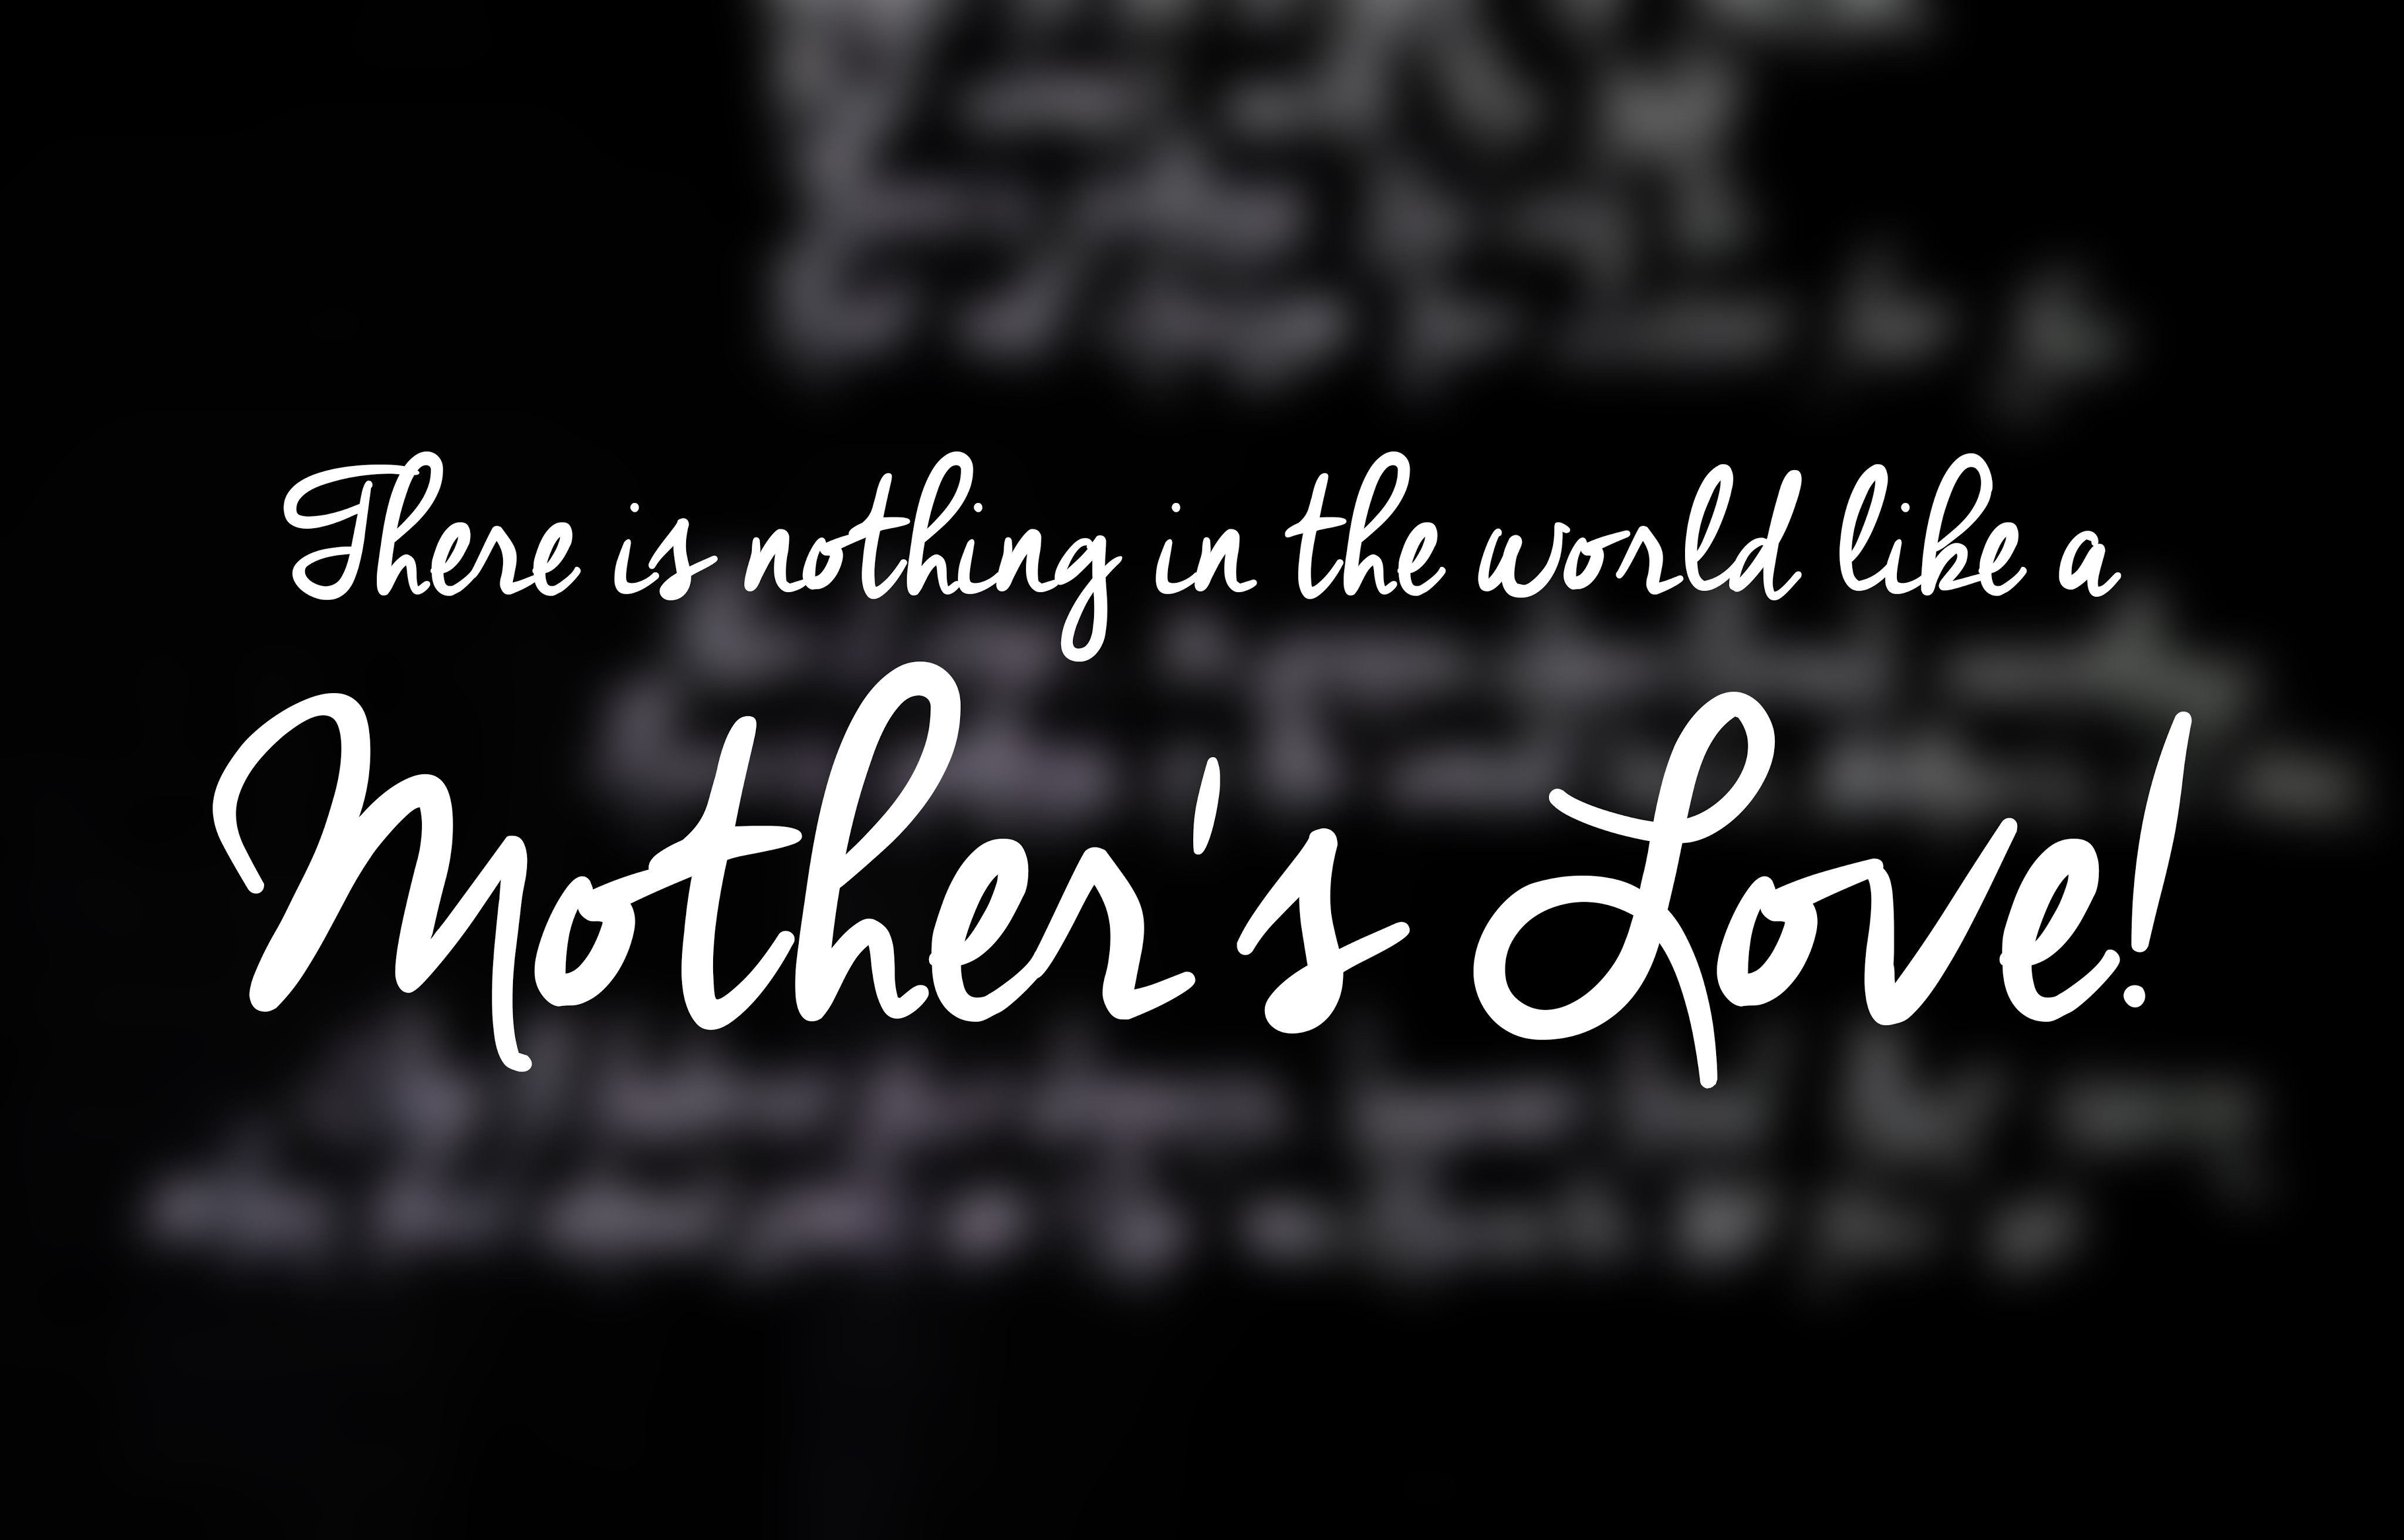 There's Nothing in the World Like a Mother's Love - Gena Hill Lyrics ...